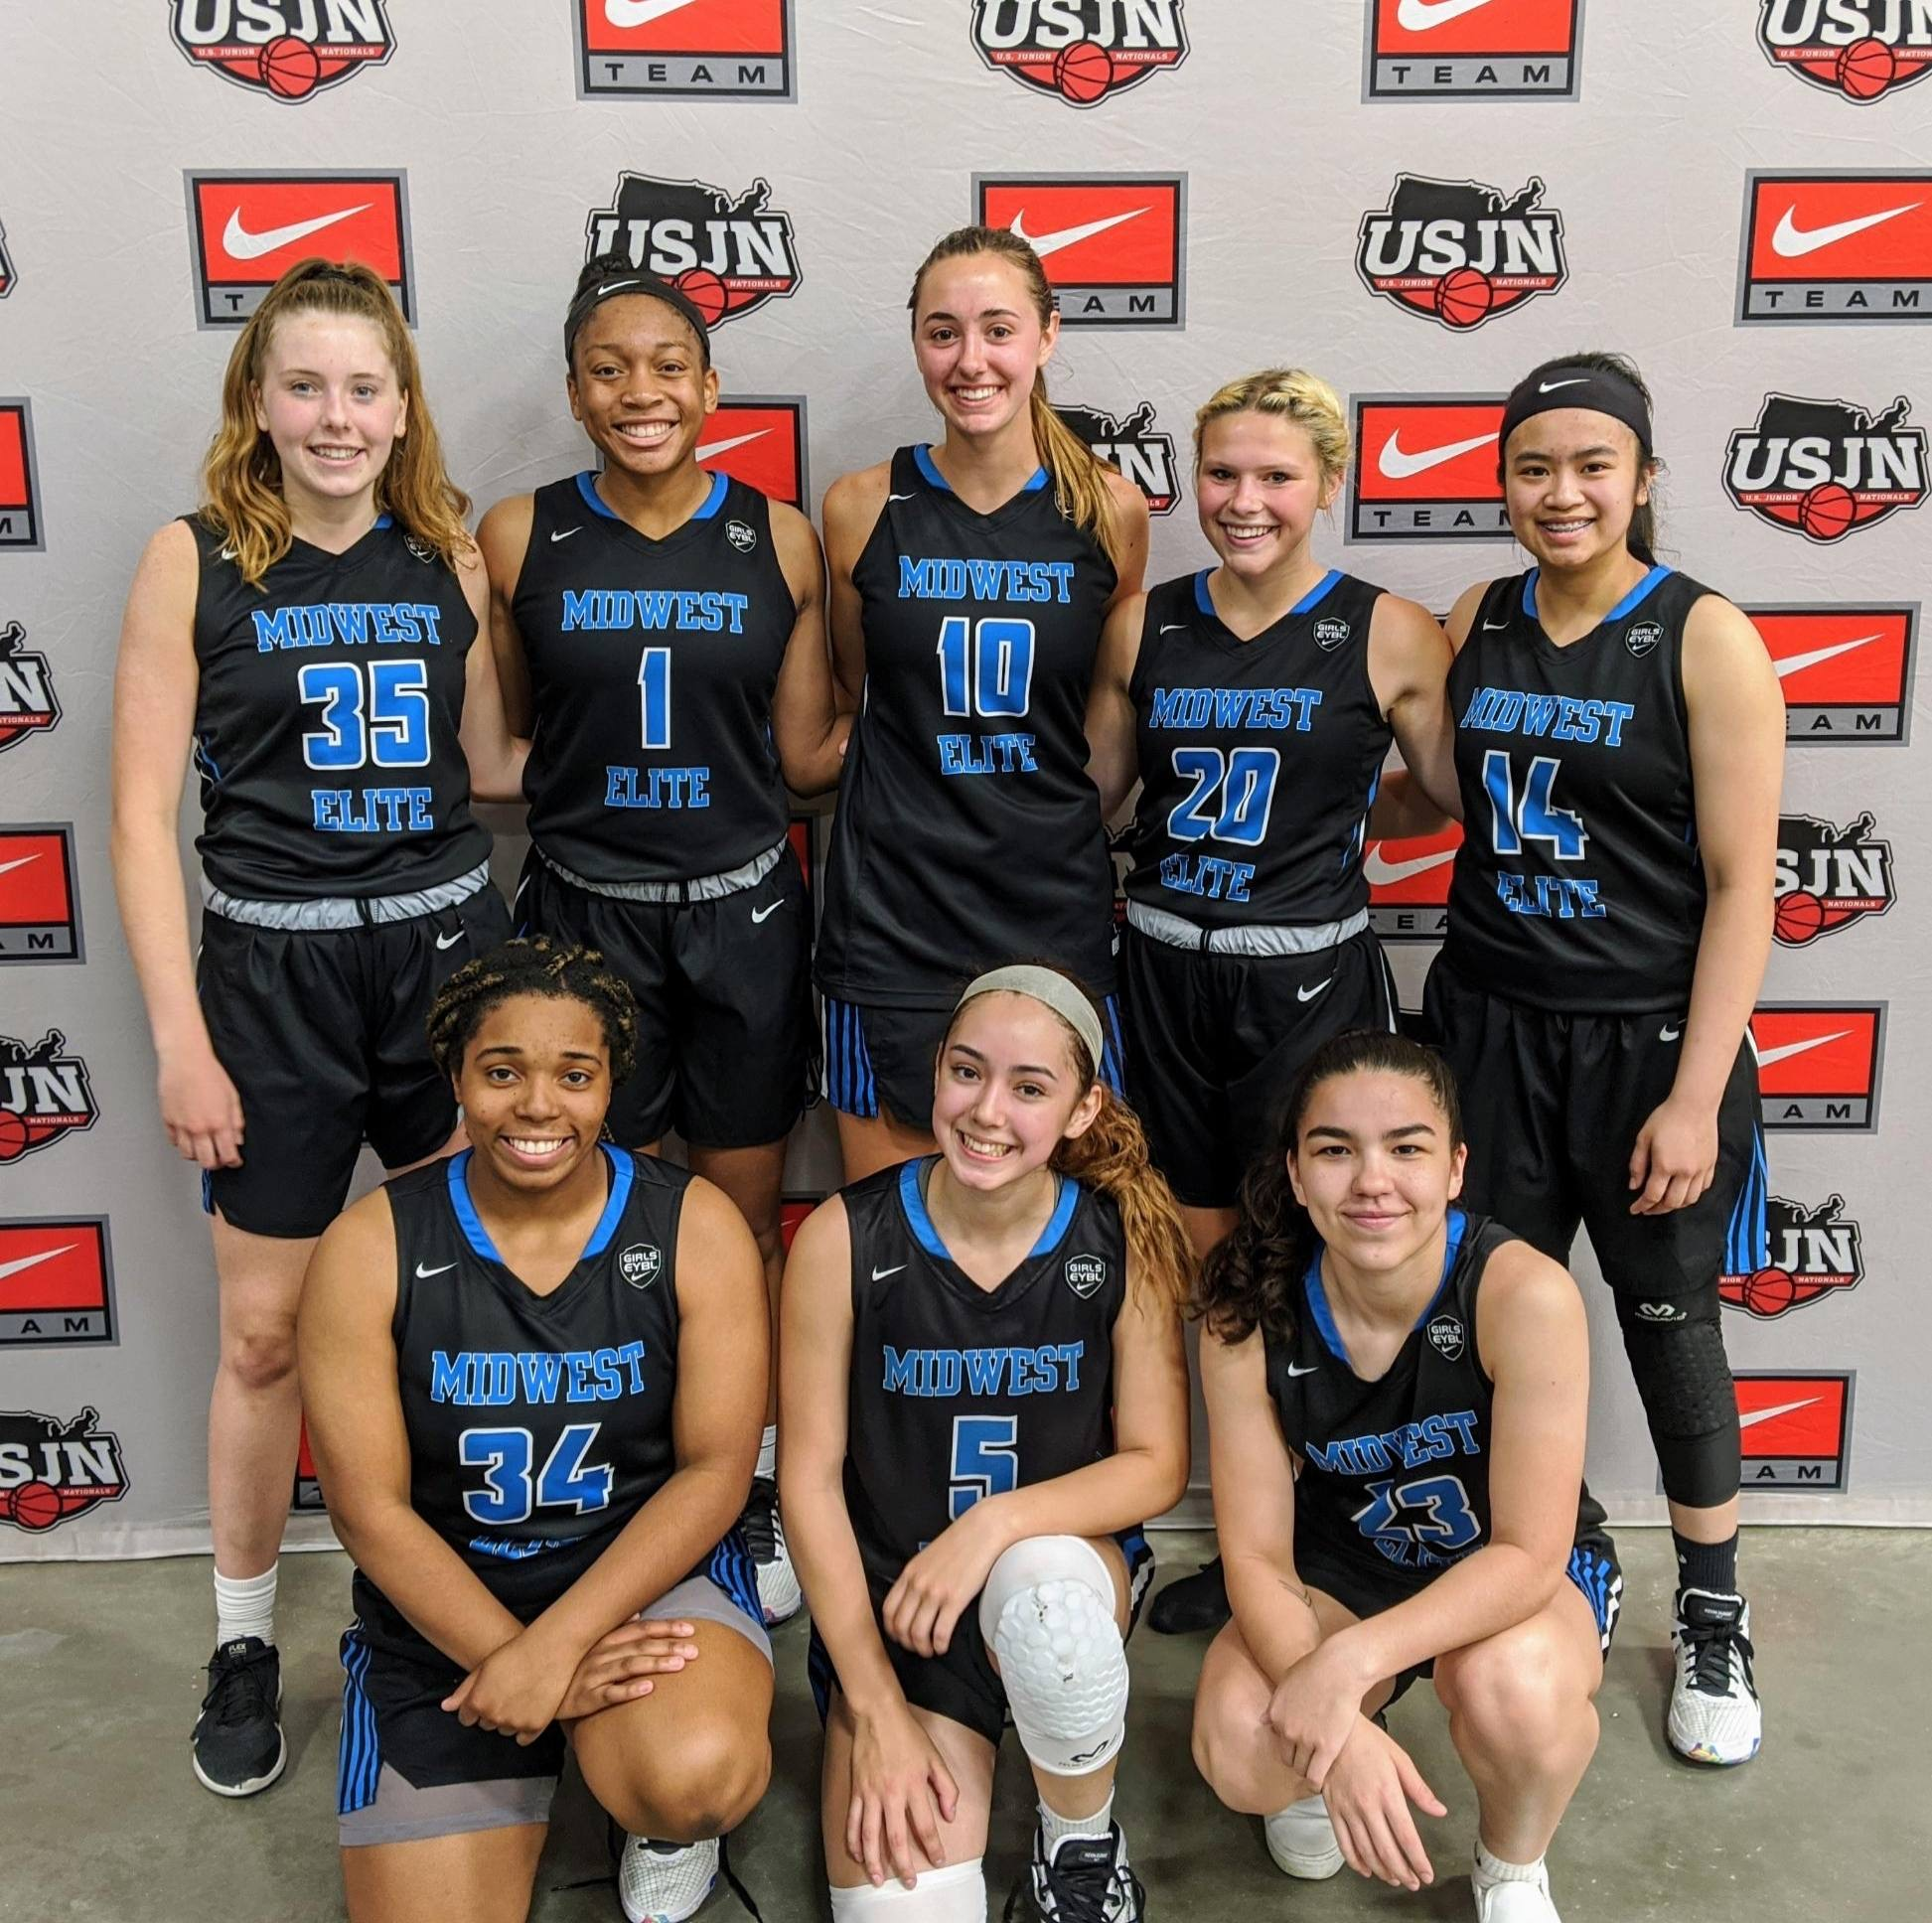 17u Cox in Indy in June